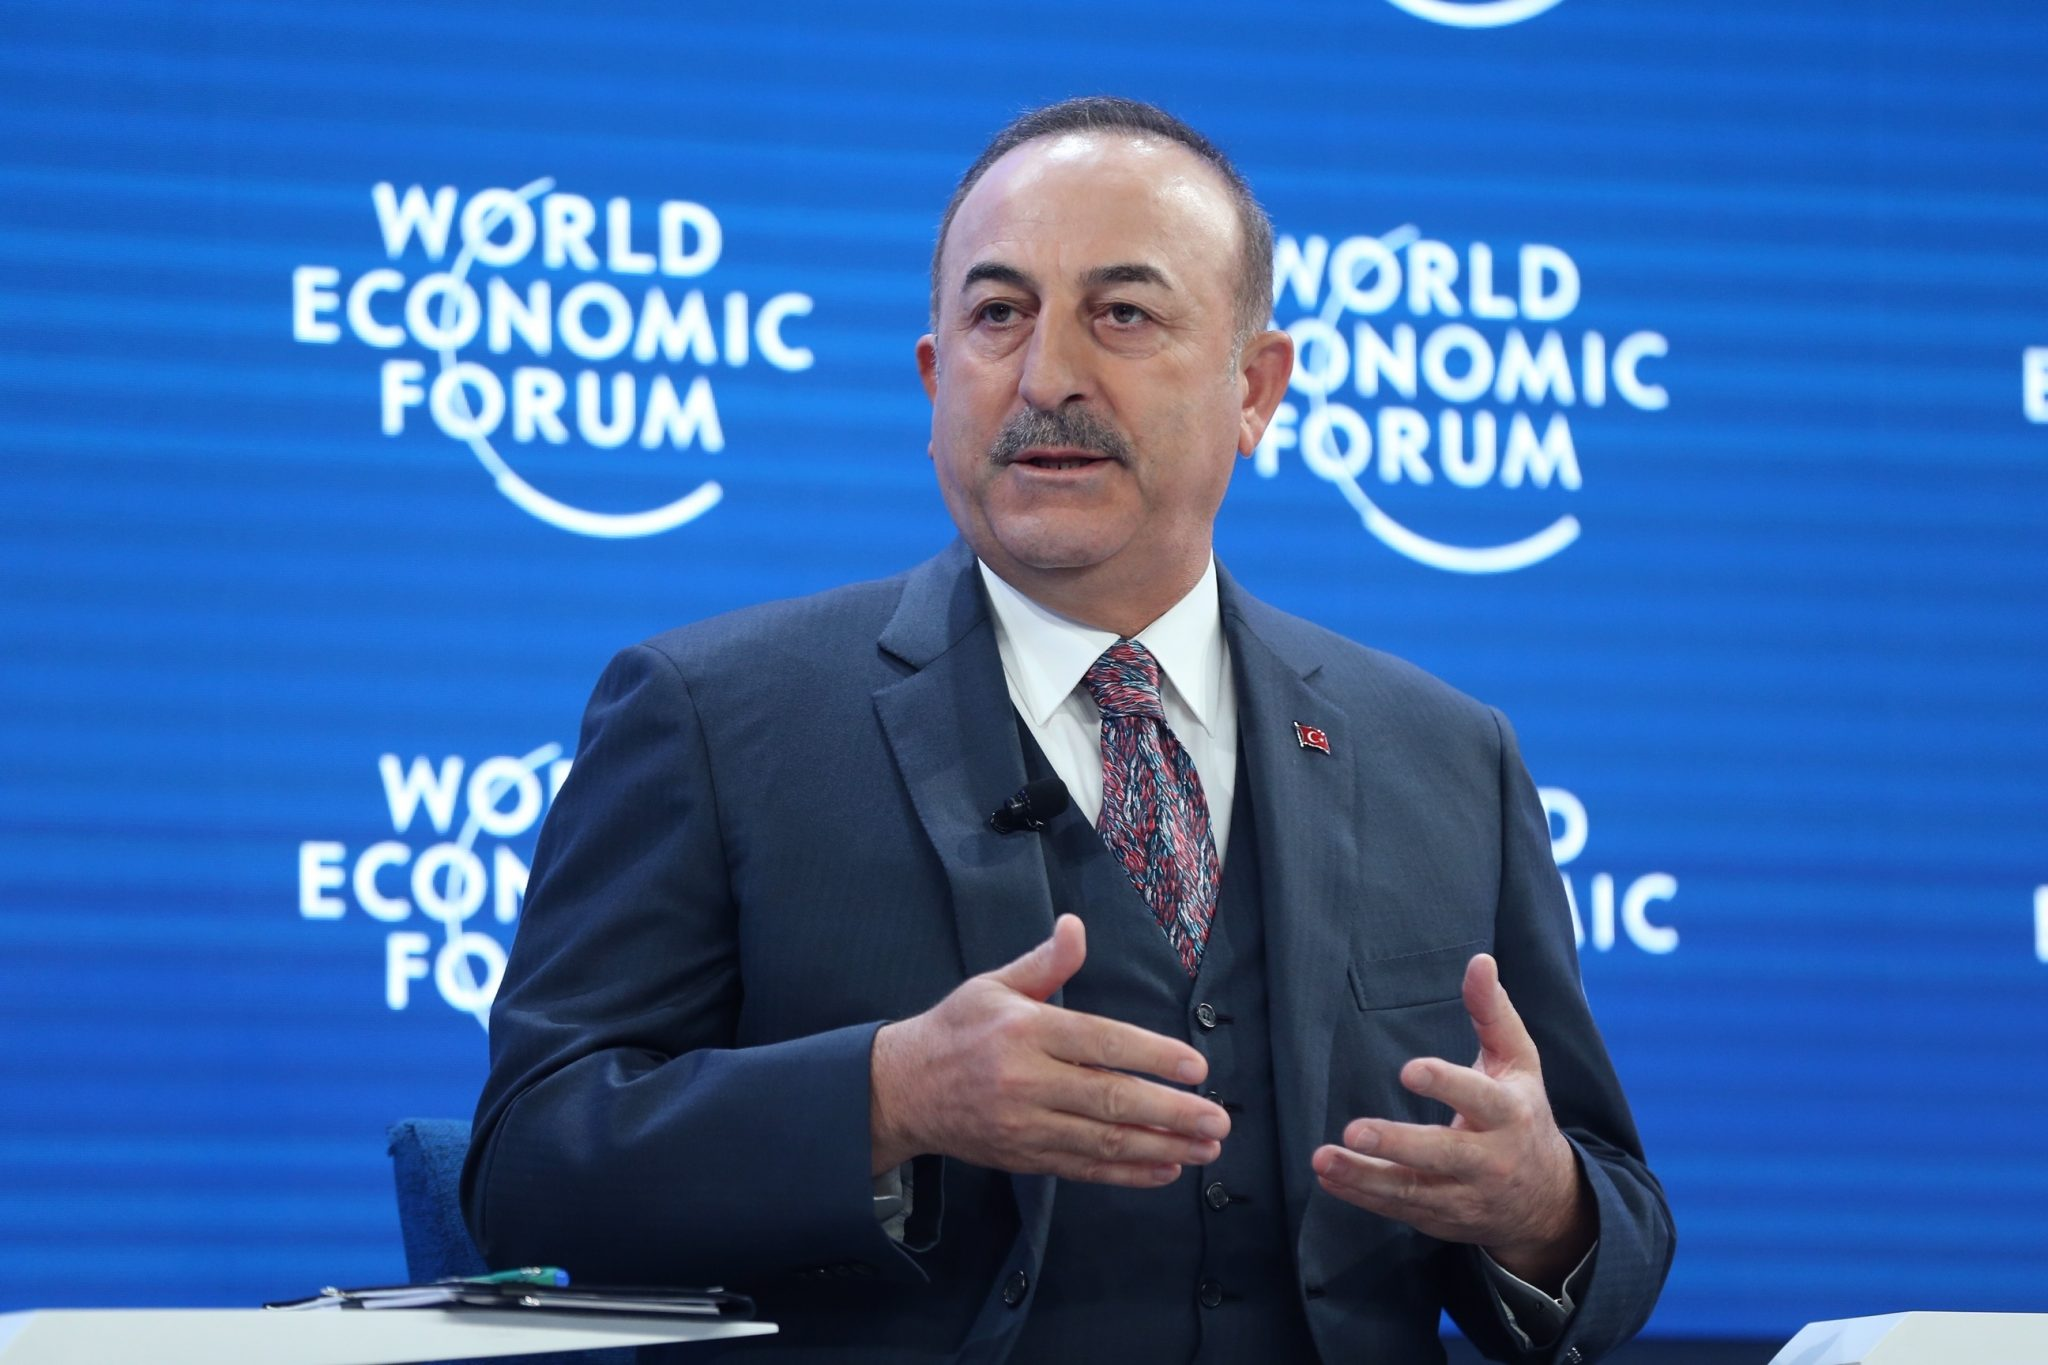 World Economic Forum 50th Annual Meeting in Davos